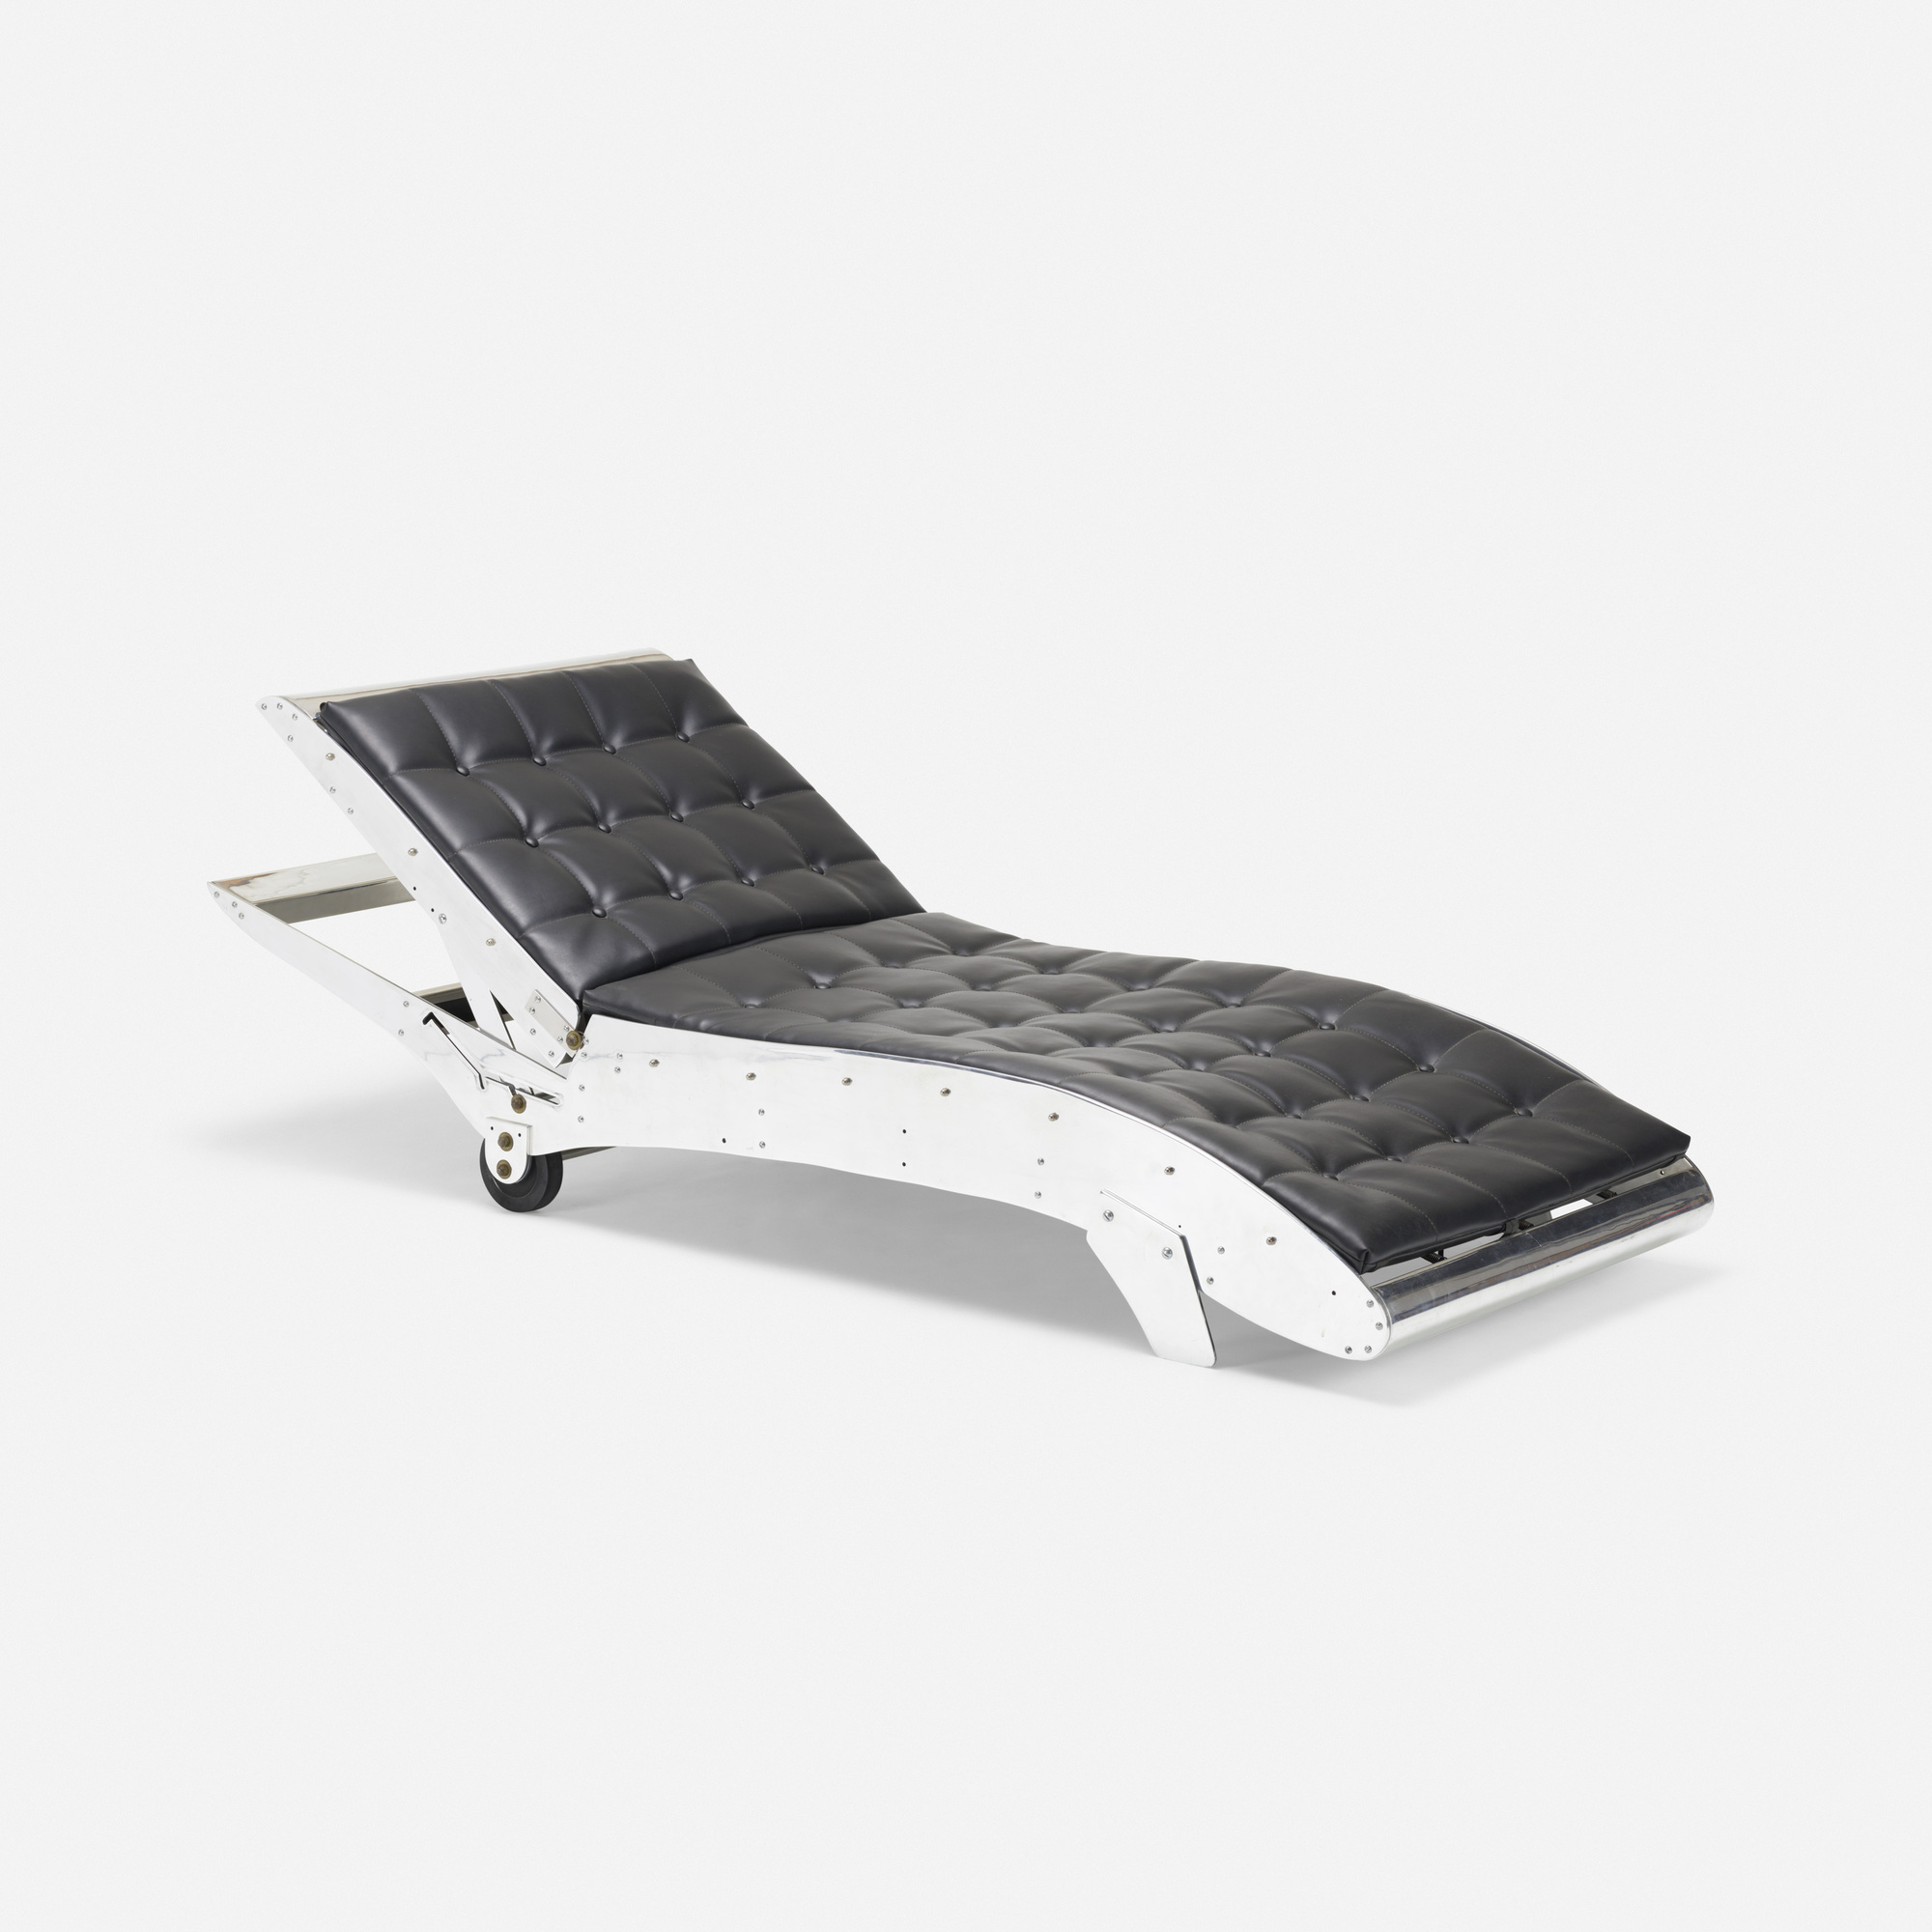 345: Industrial / chaise lounge (1 of 3)